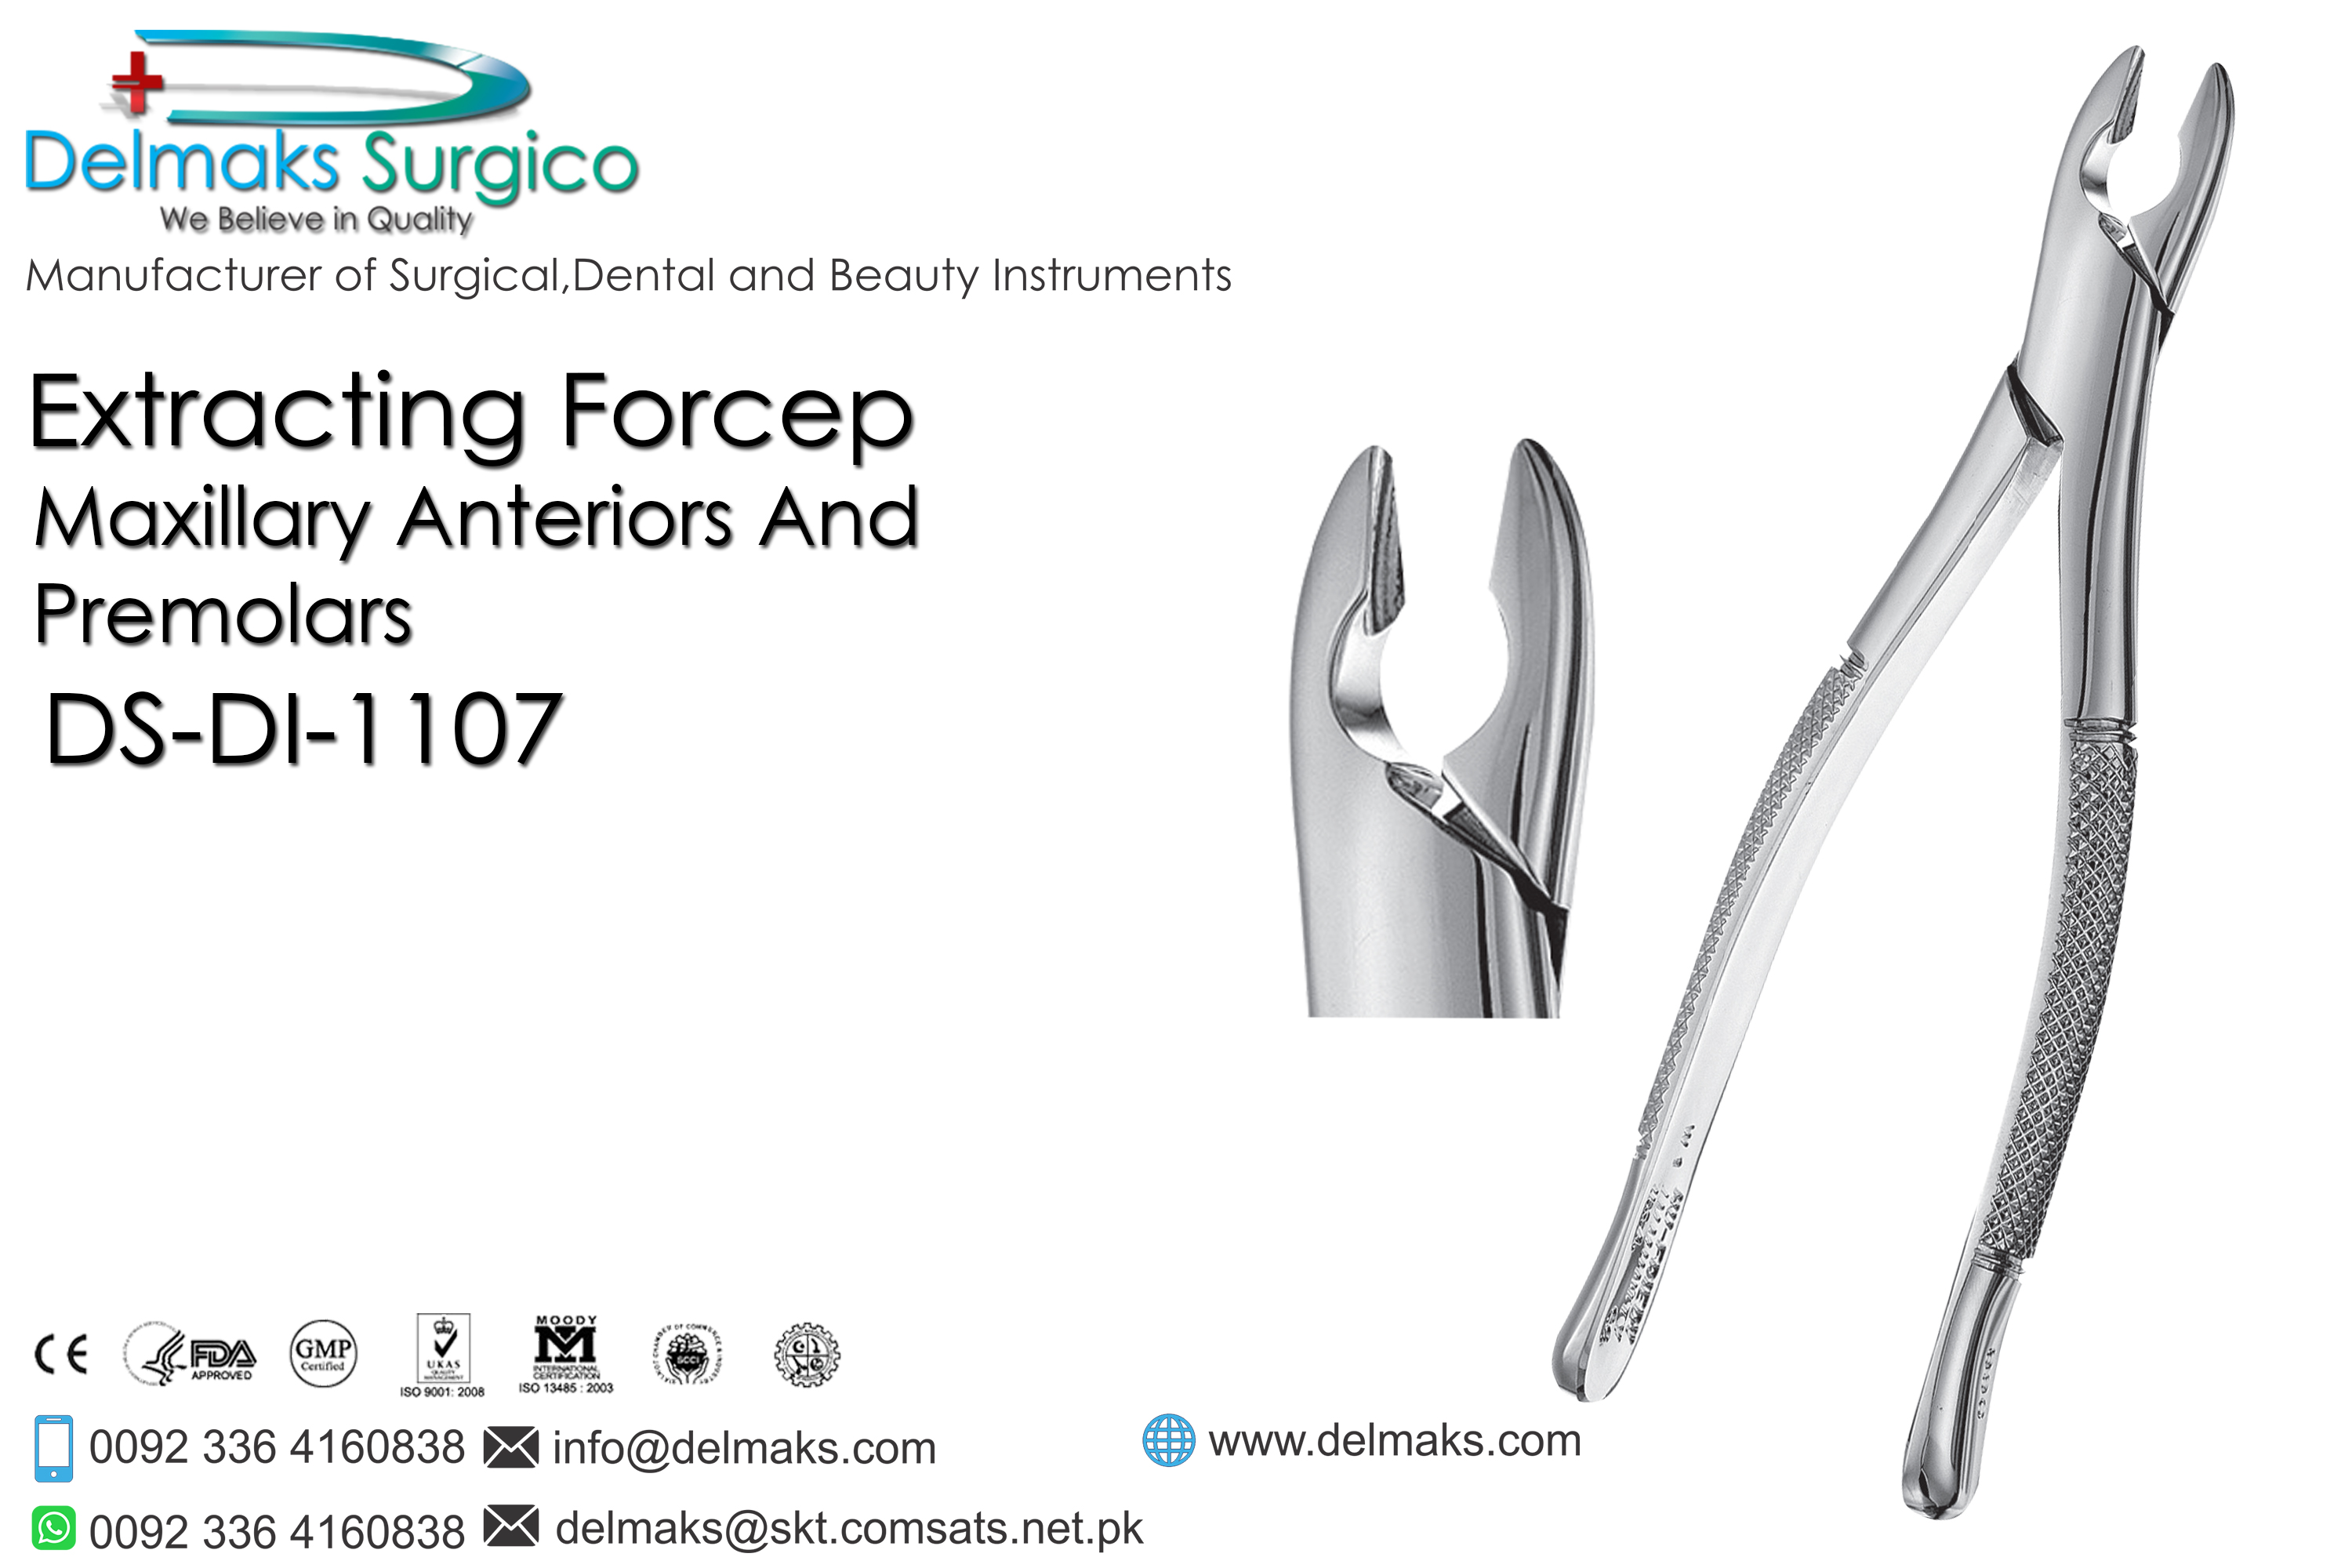 Extracting Forcep (Maxillary Anteriors And Premolars)-Oral and Maxillofacial Surgery Instruments-Dental Instruments-Delmaks Surgico